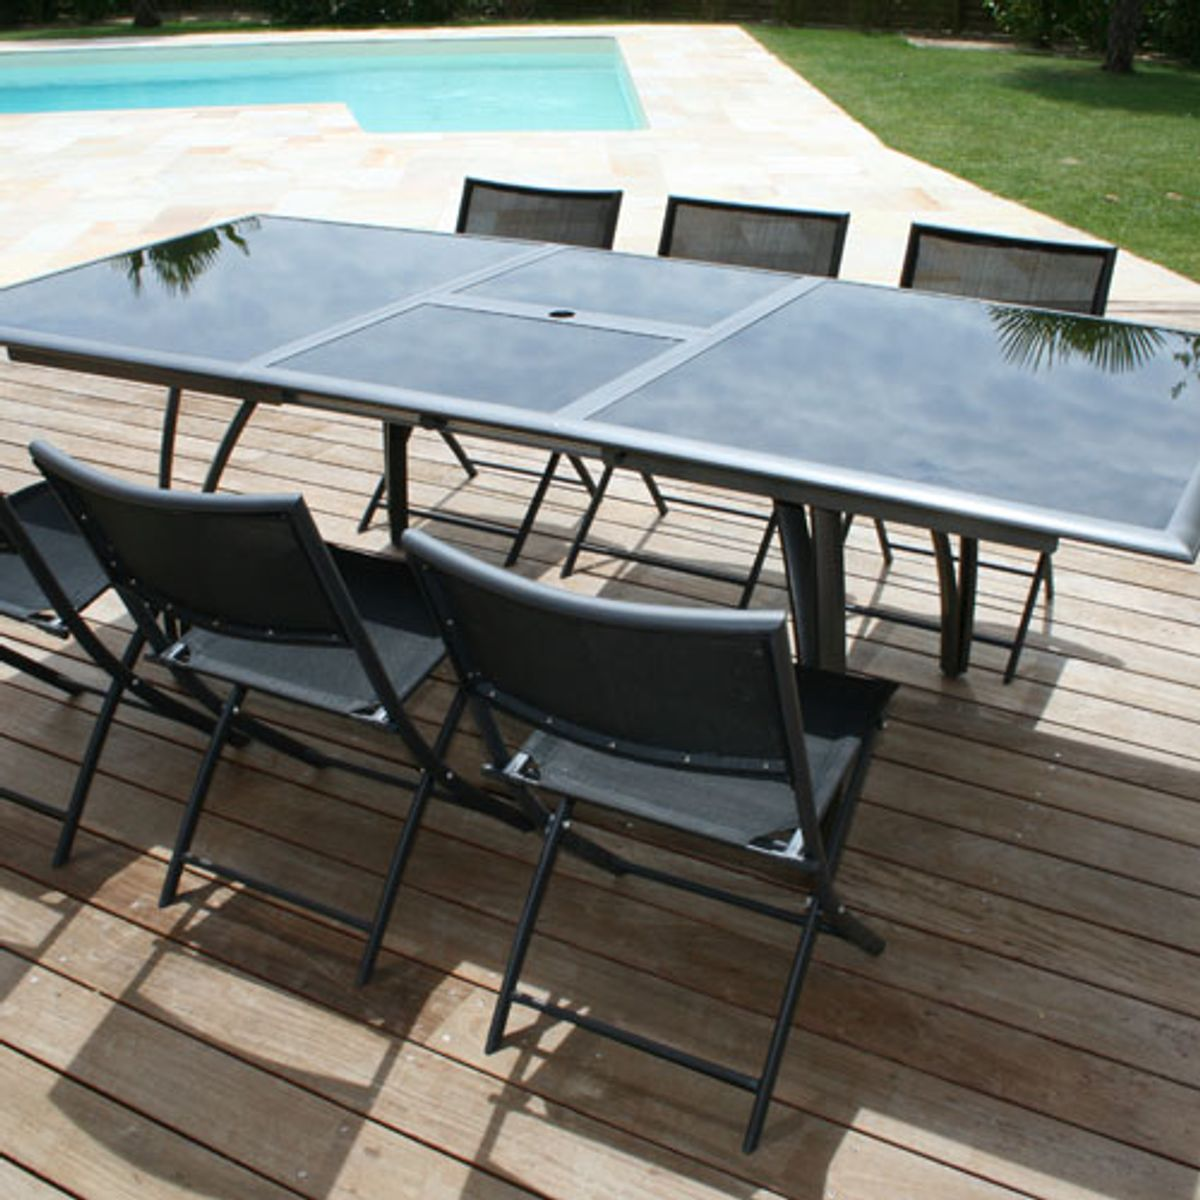 Emejing Comment Nettoyer Une Table De Jardin En Aluminium Ideas ...